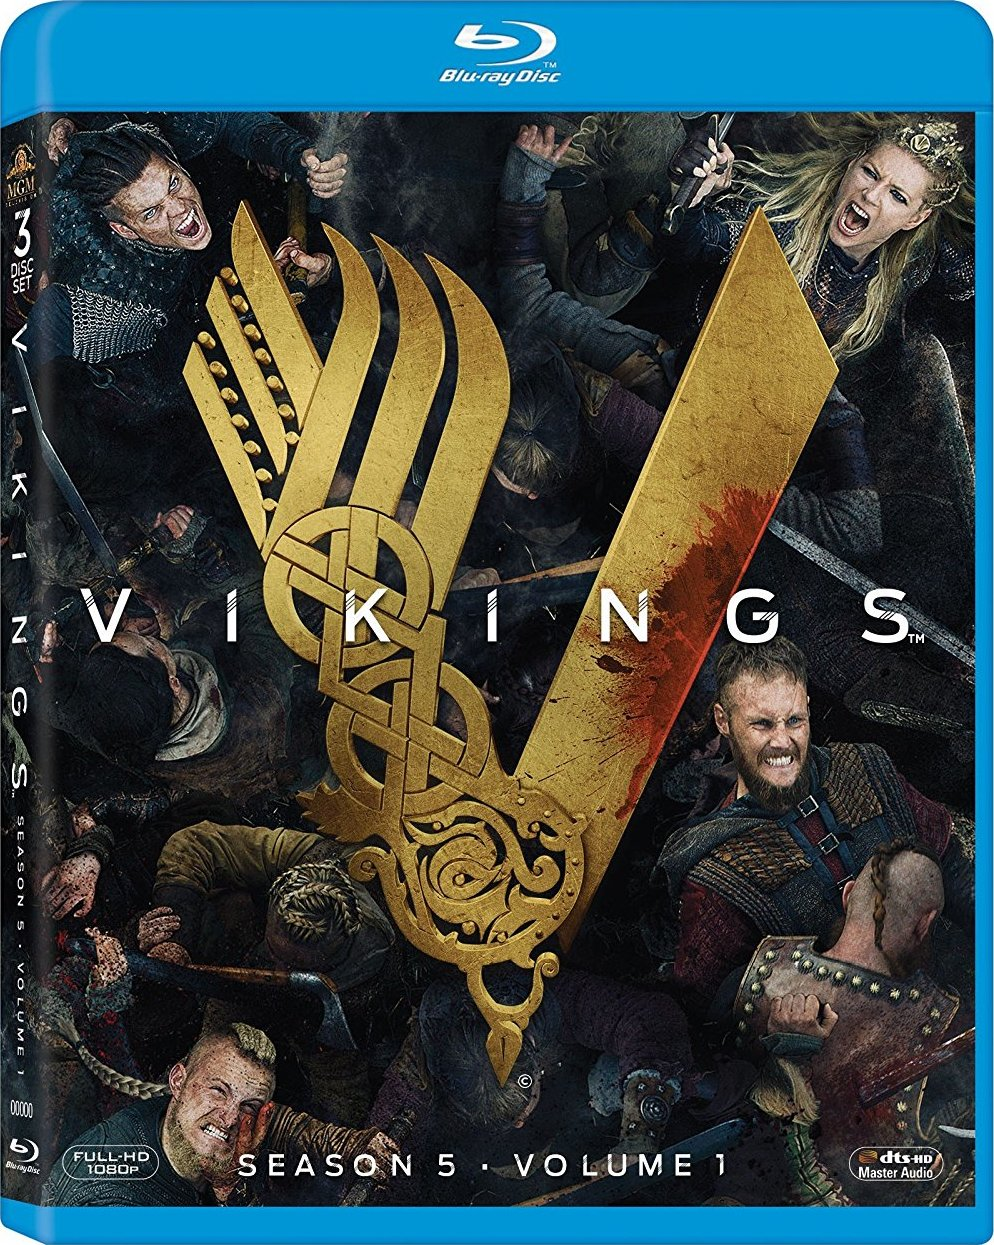 Vikings: Season 5, Volume 1 (Blu-ray)(Region Free)